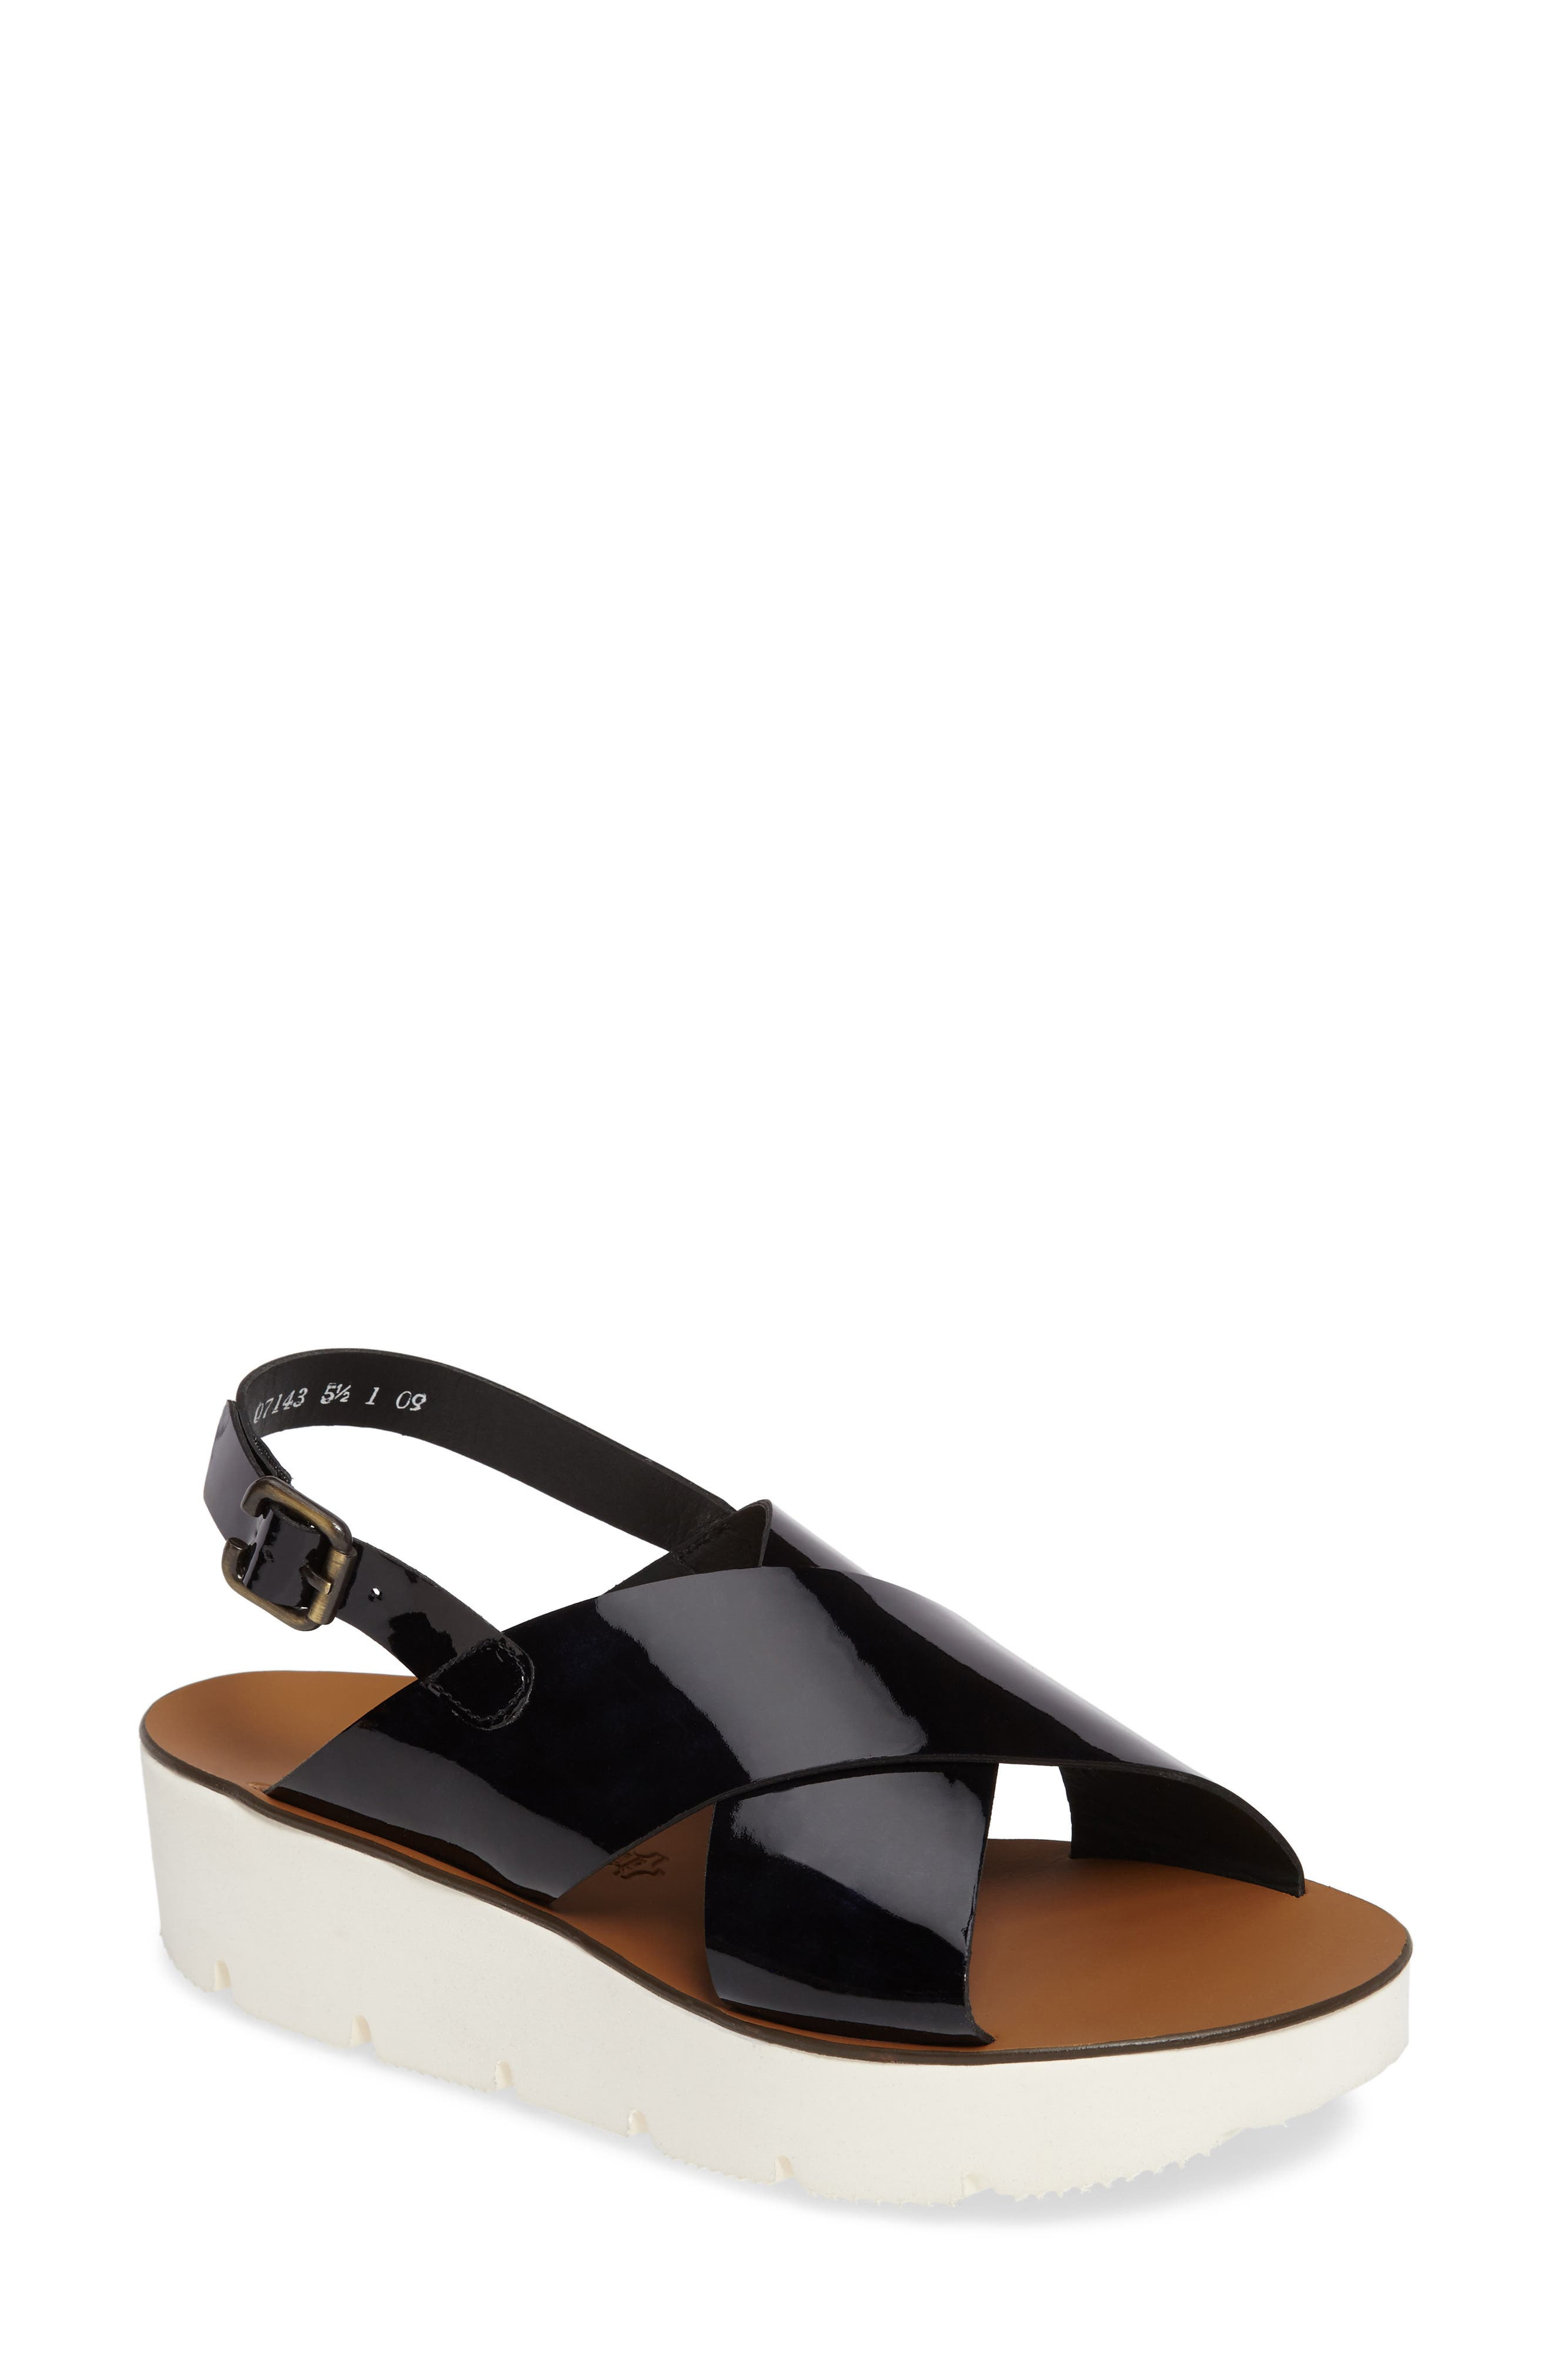 PAUL GREEN Nico Cross Strap Platform Sandal